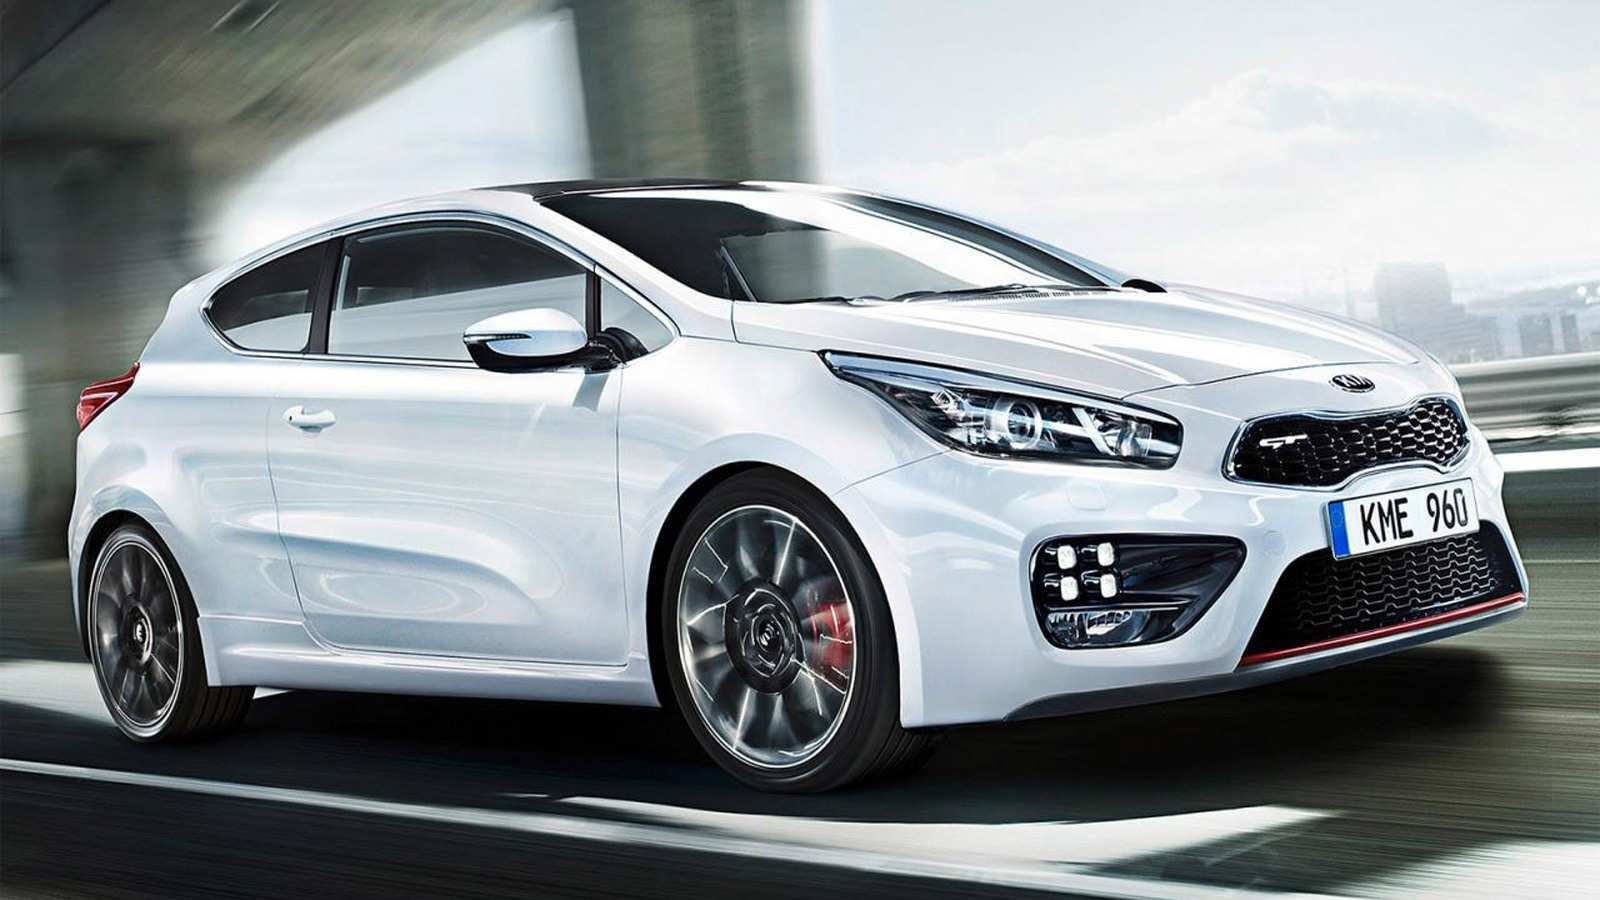 86 Best Review Kia Pro Ceed Gt 2020 New Review with Kia Pro Ceed Gt 2020